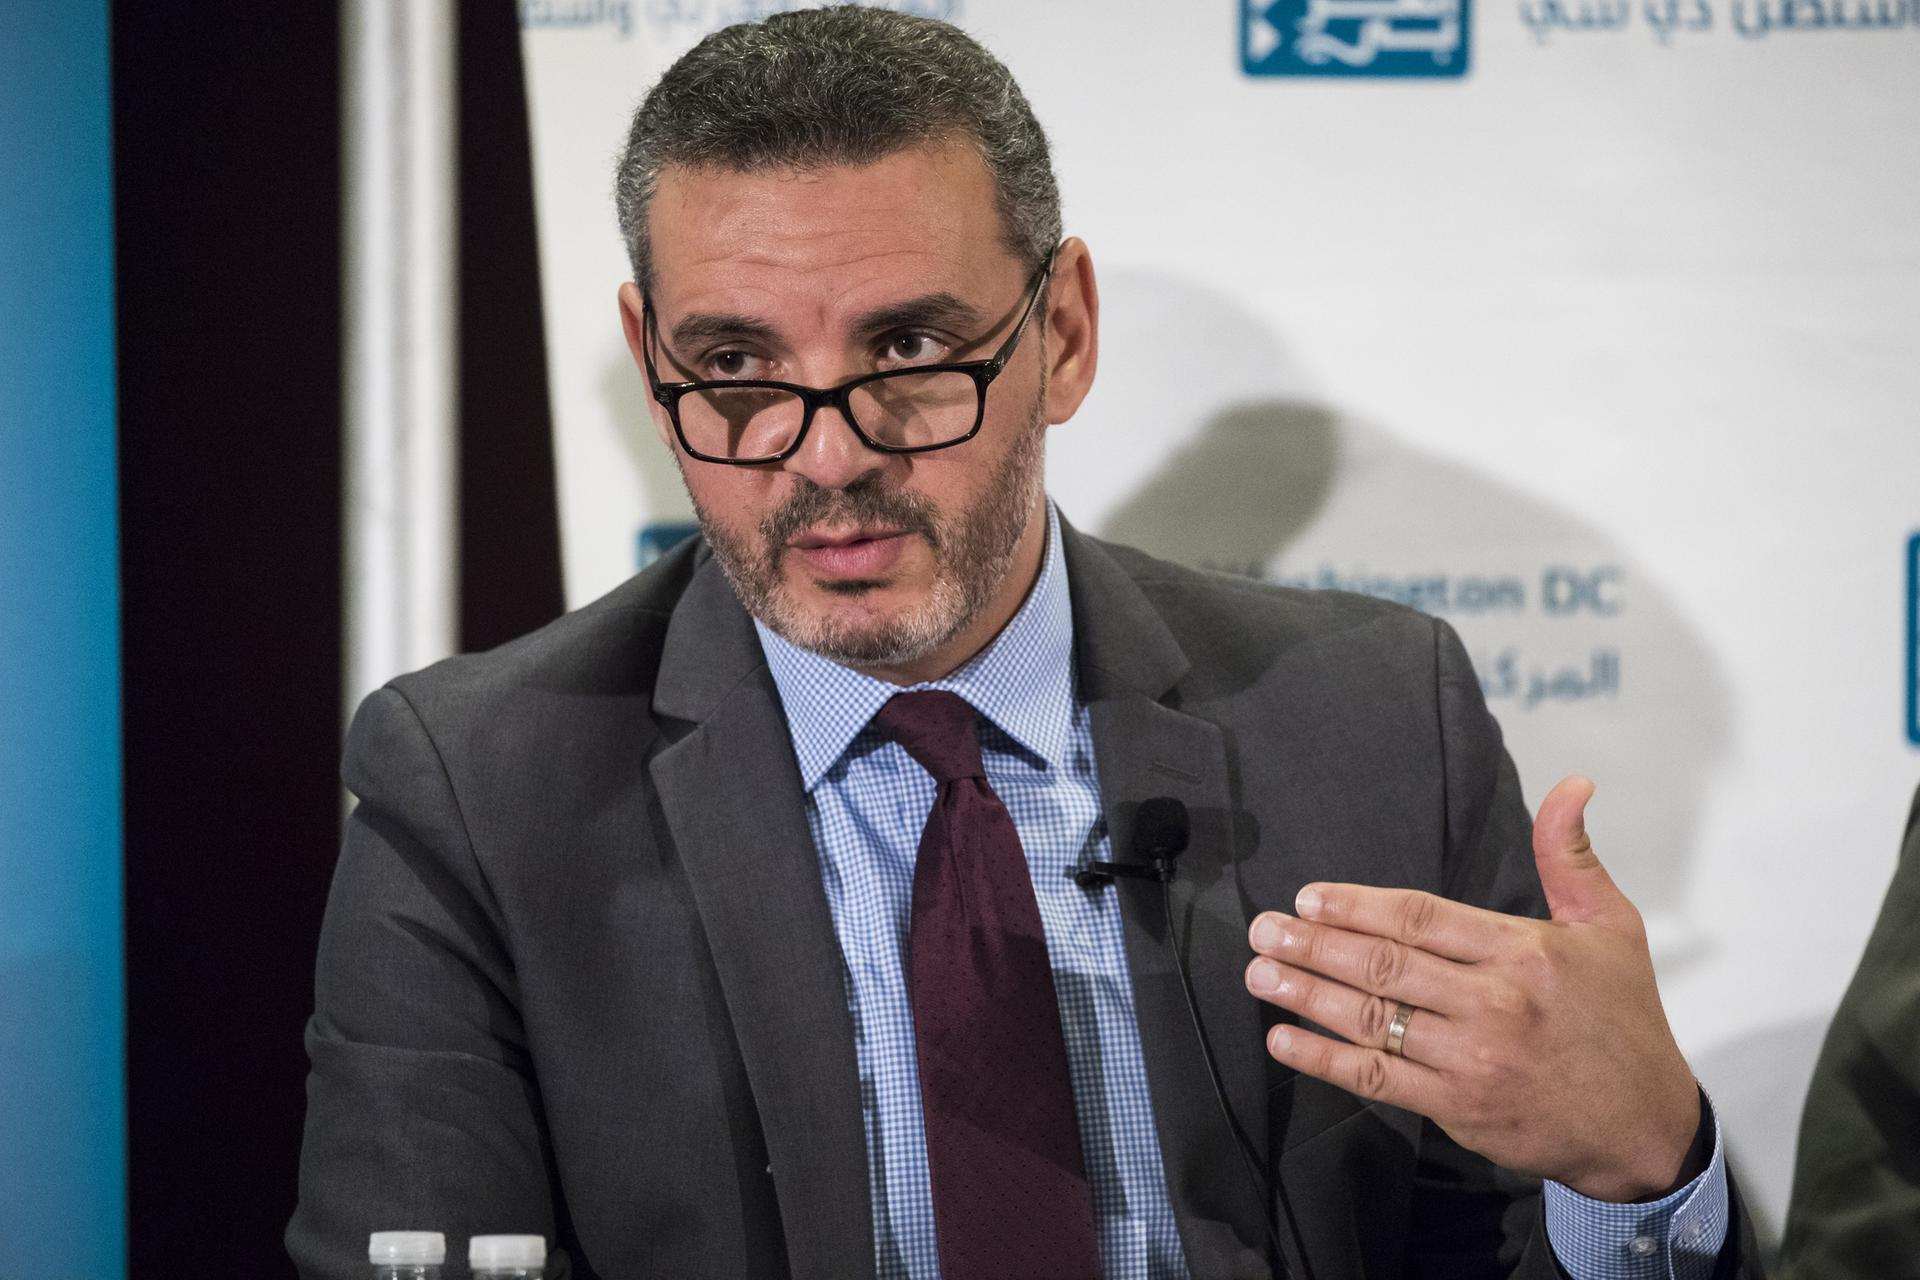 """WASHINGTON, USA - JUNE 6: Khaled Elgindy, from the Brookings Institute, speaks during the """"What's Next for Palestine and the Palestinians?"""" panel discussion hosted by The Arab Center in Washington, USA on June 6, 2017. (Photo by Samuel Corum/Anadolu Agency/Getty Images)"""